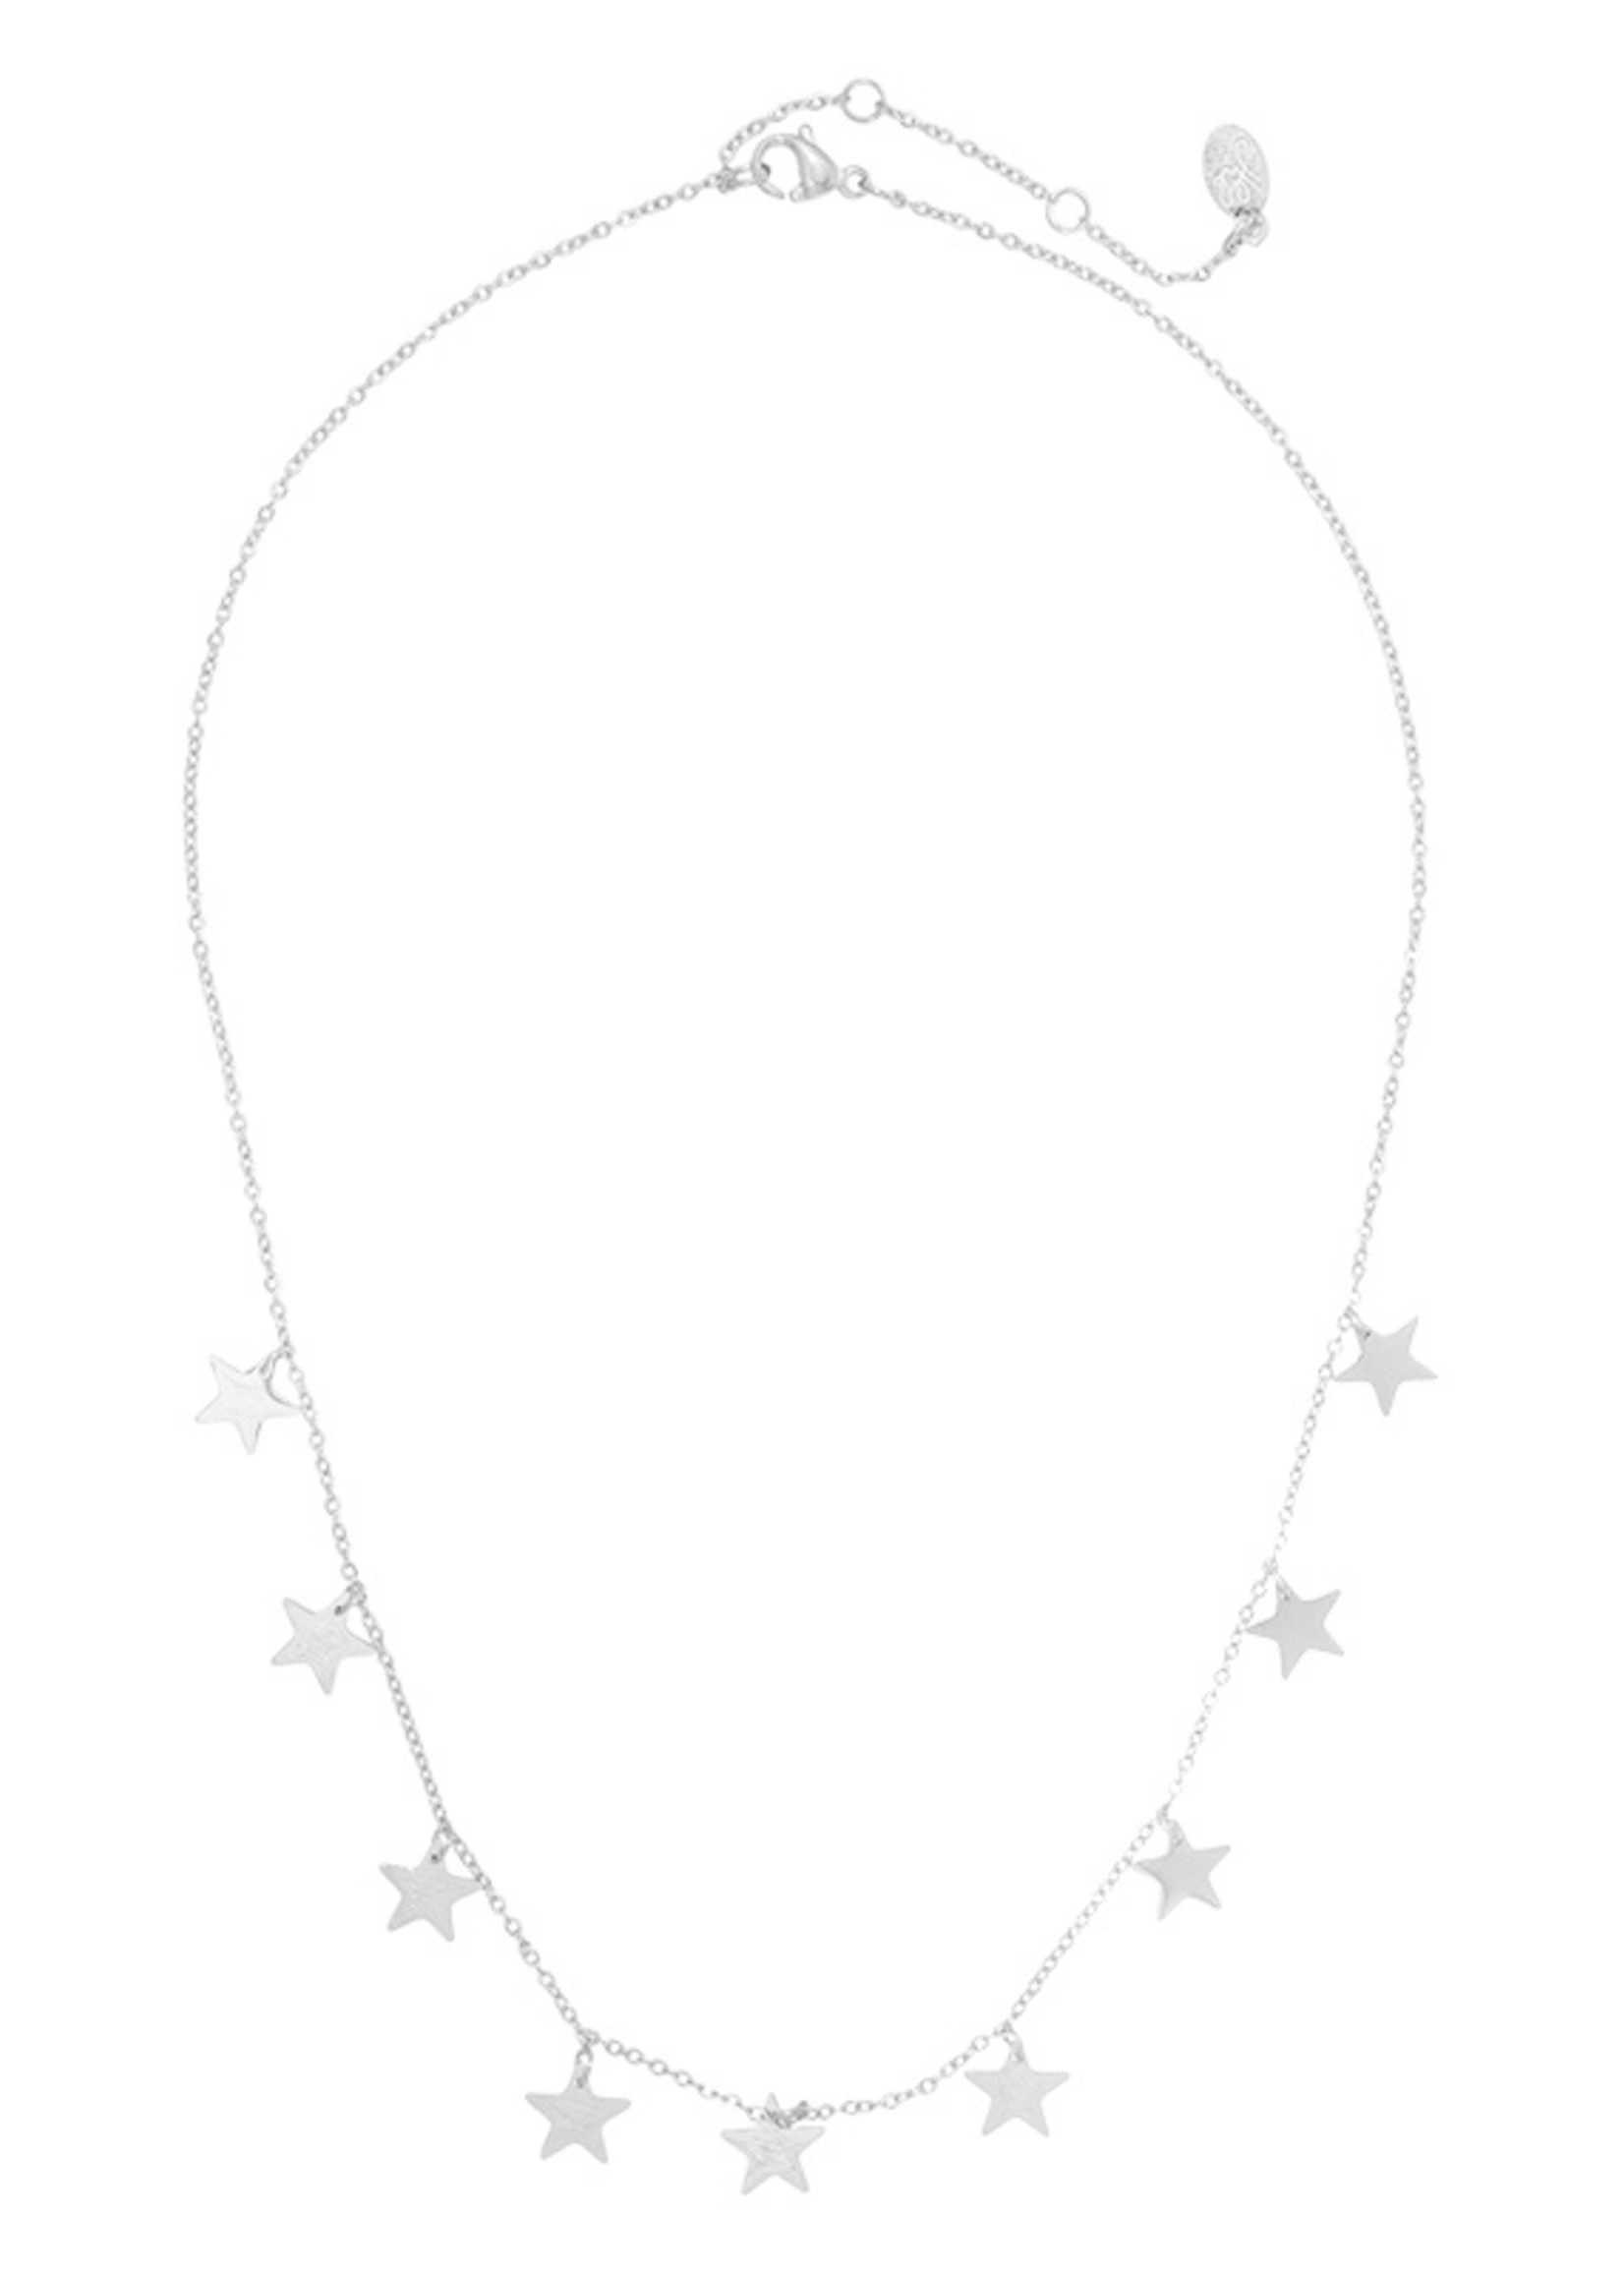 LOTS OF STARS KETTING ZILVER